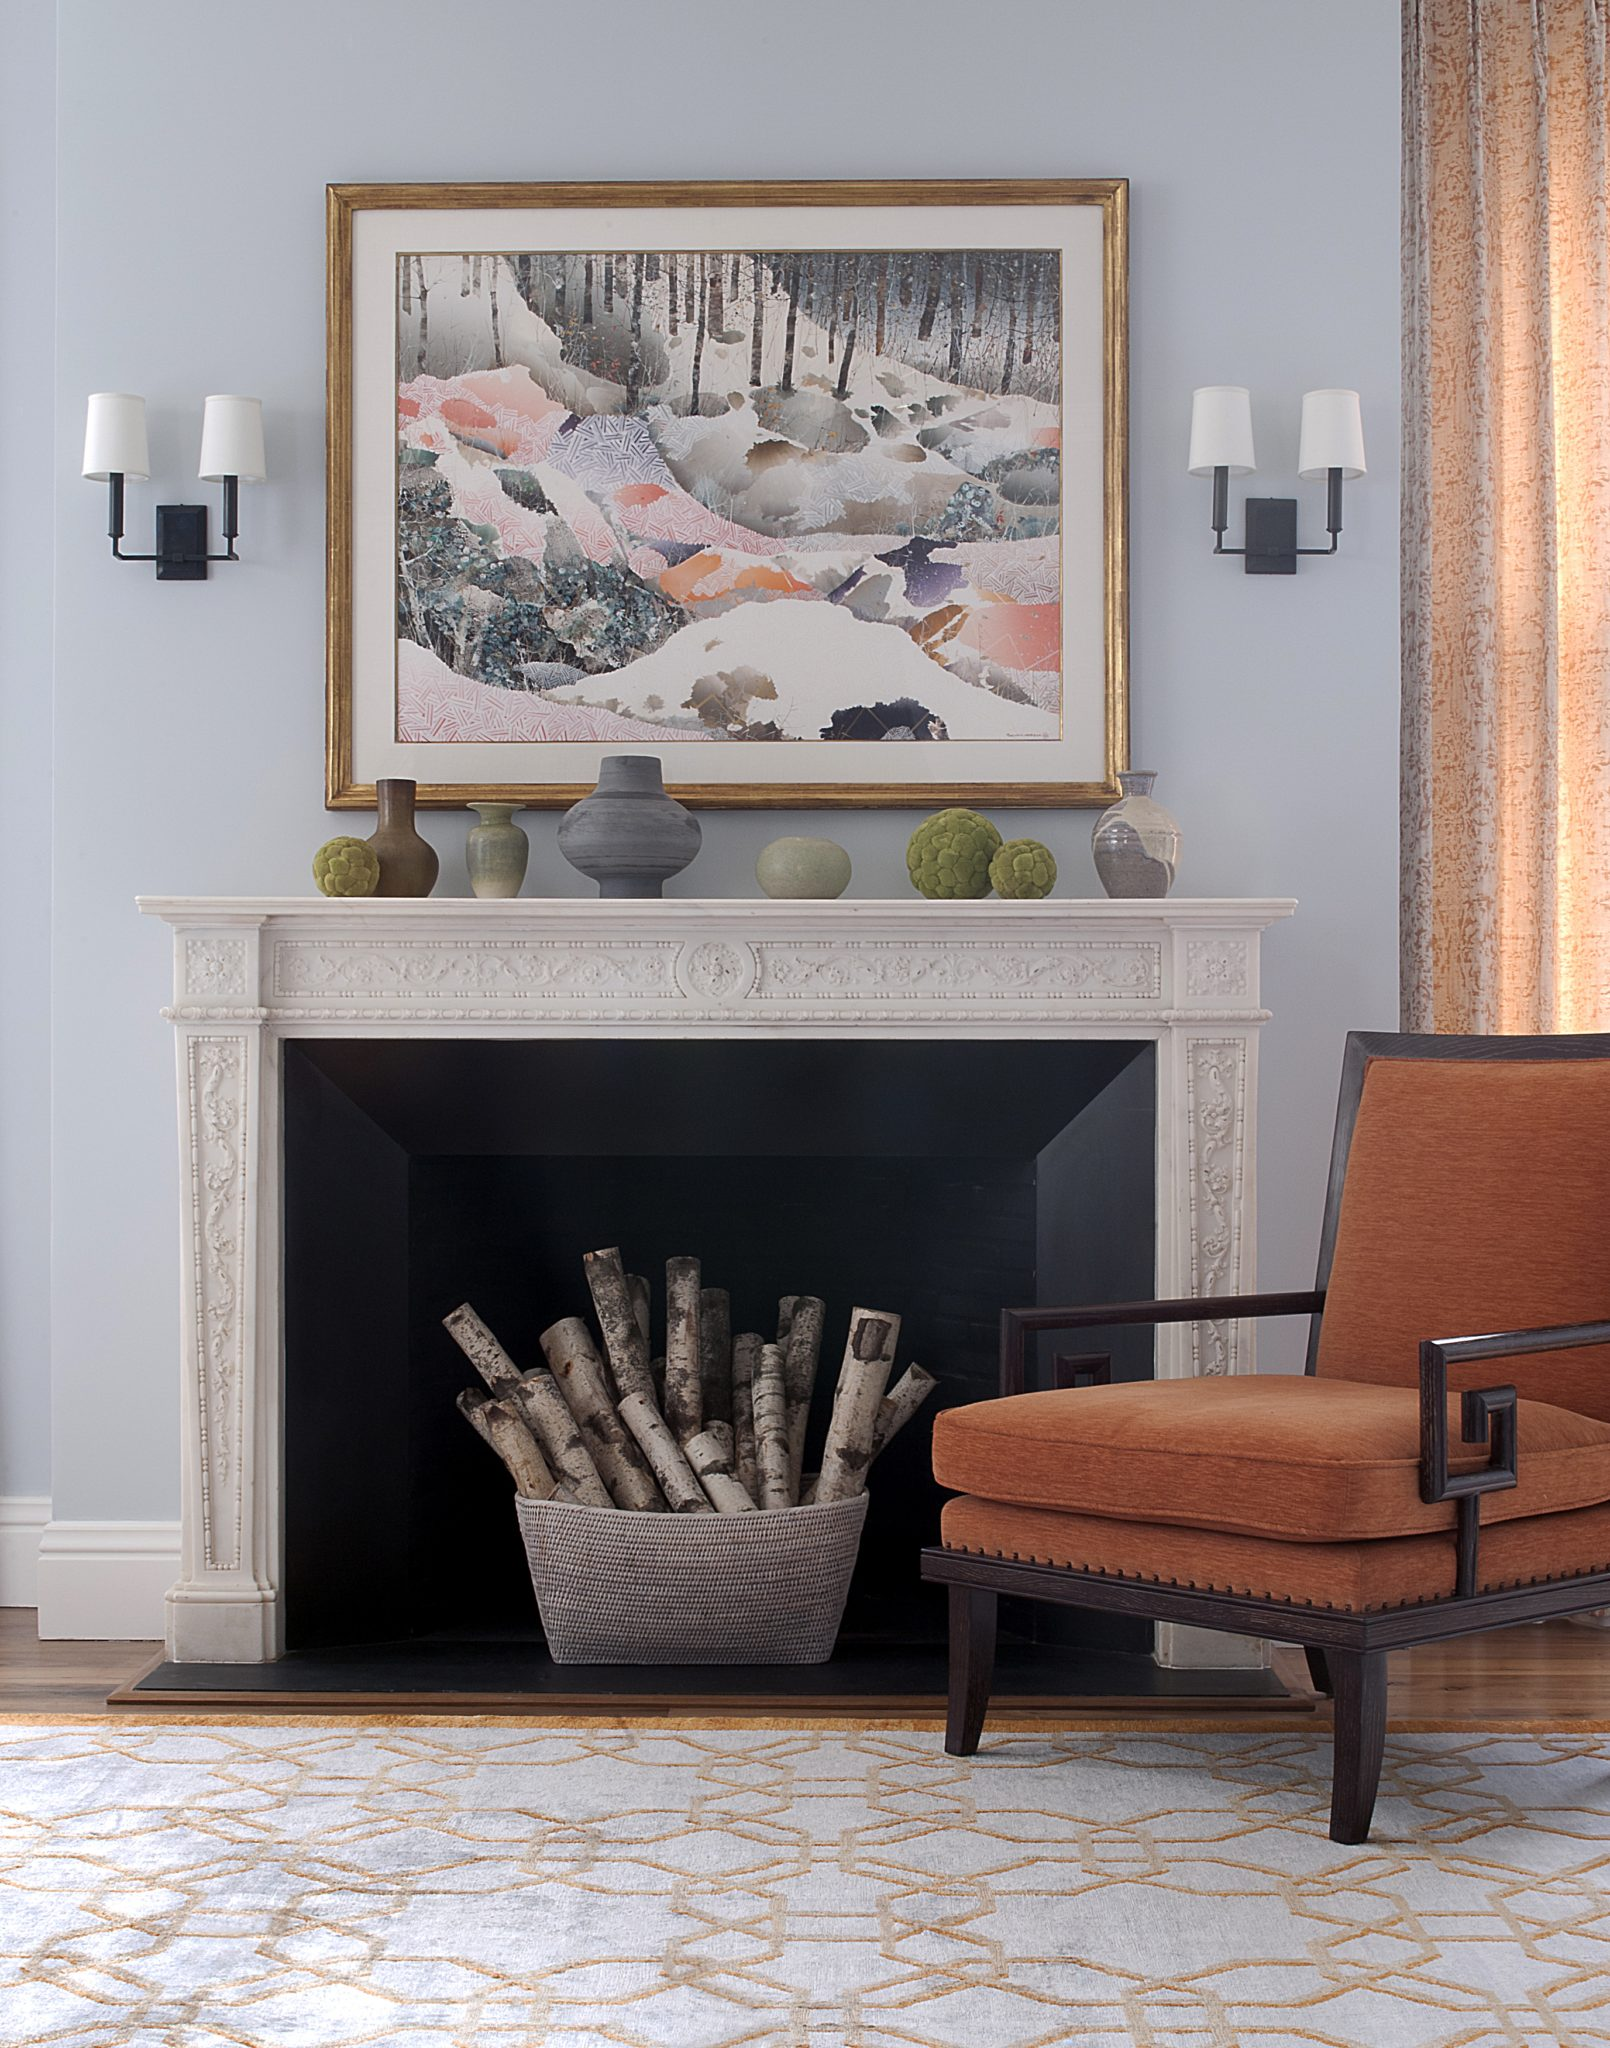 100-year old original mantel provides a dramatic focal point to the Living Room. by John Willey | Willey Design LLC